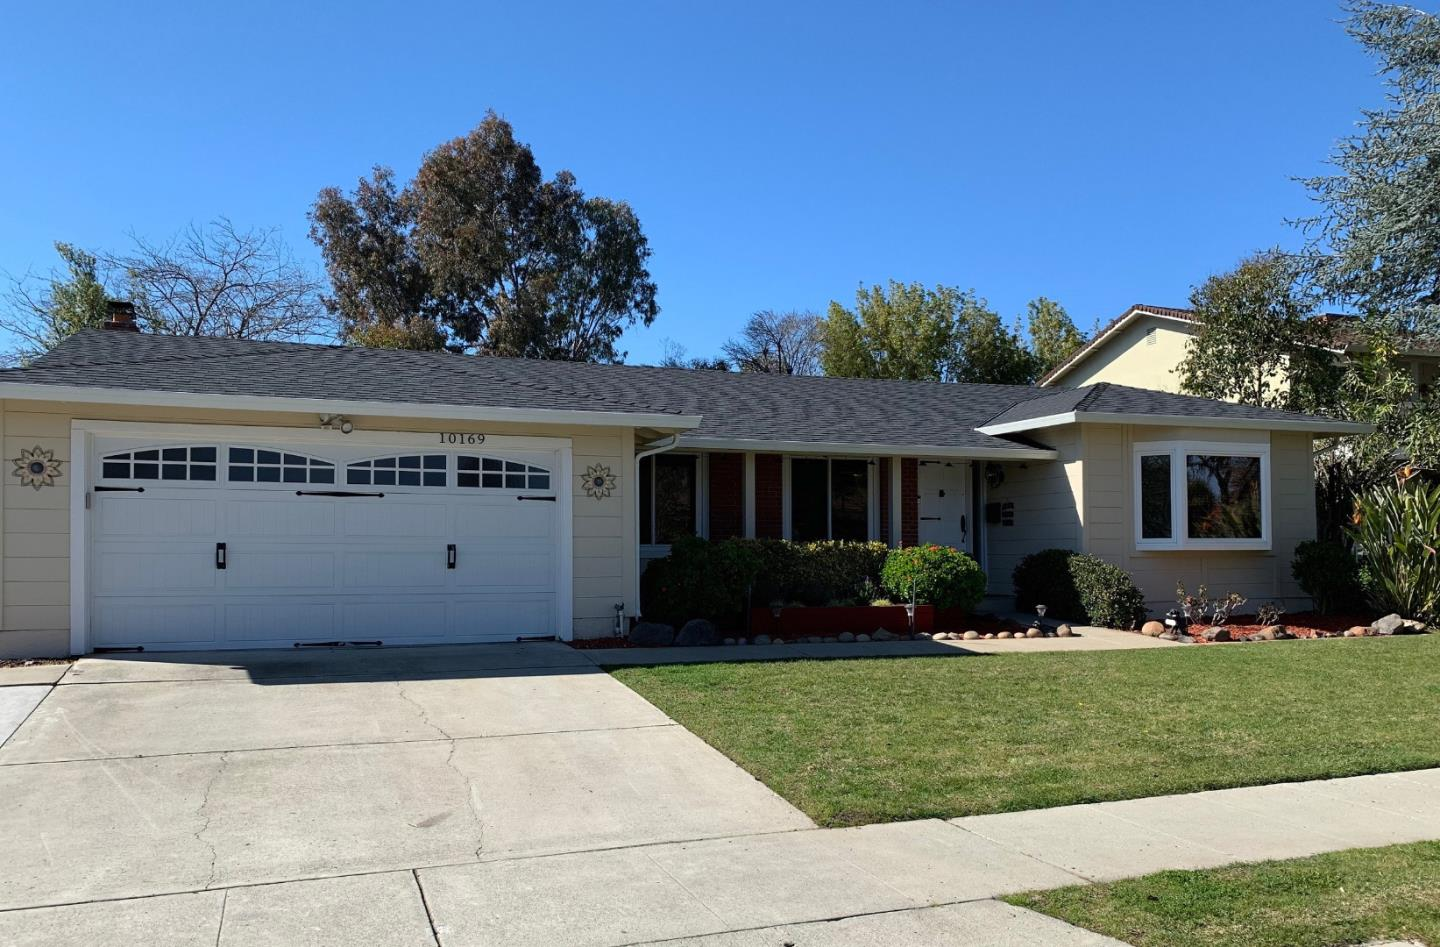 Detail Gallery Image 1 of 1 For 10169 N Blaney Ave, Cupertino, CA, 95014 - 4 Beds   2 Baths